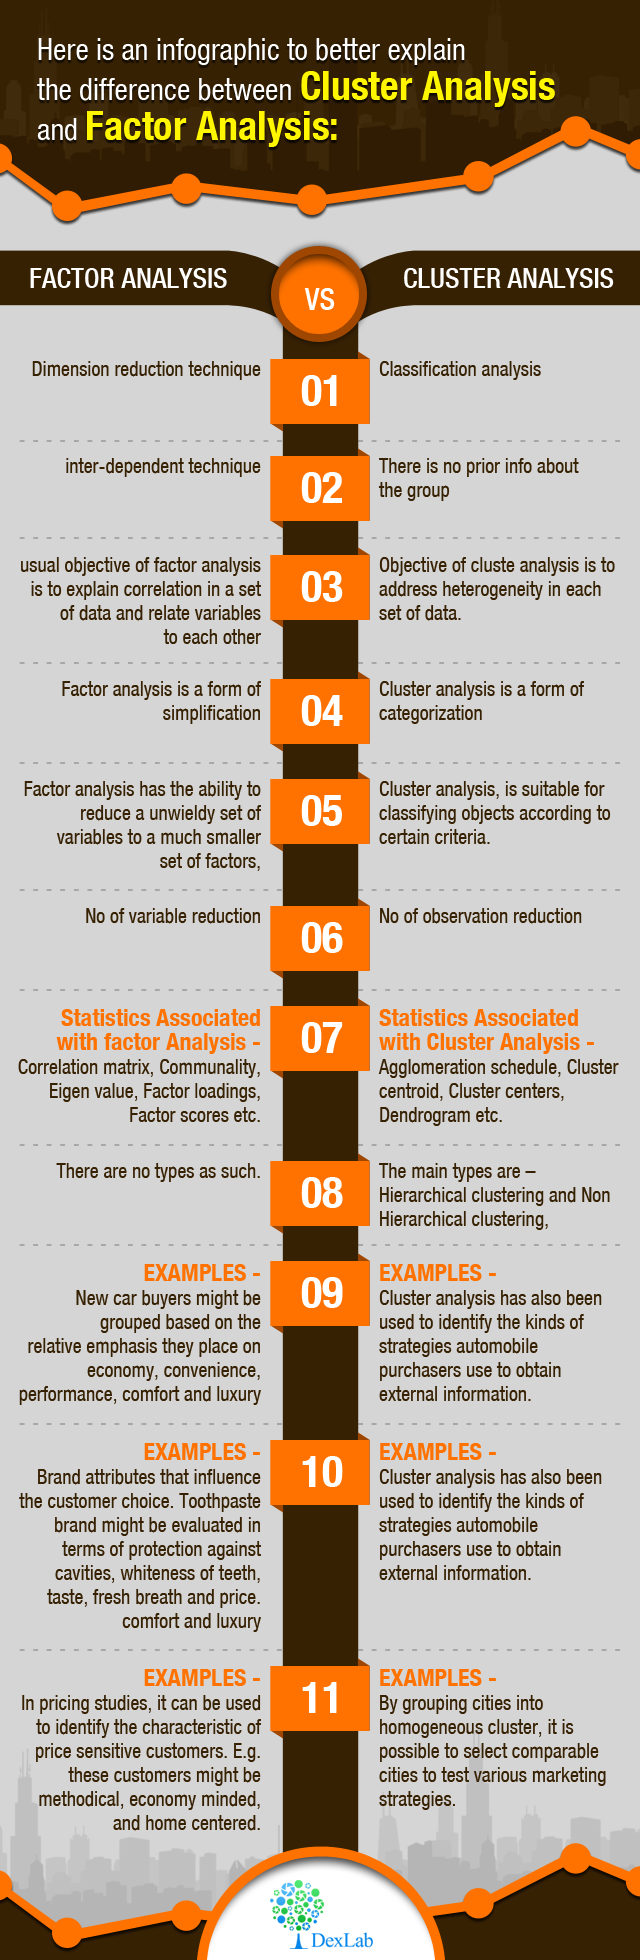 Here is an infographic to better explain the difference between cluster analysis and factor analysis: